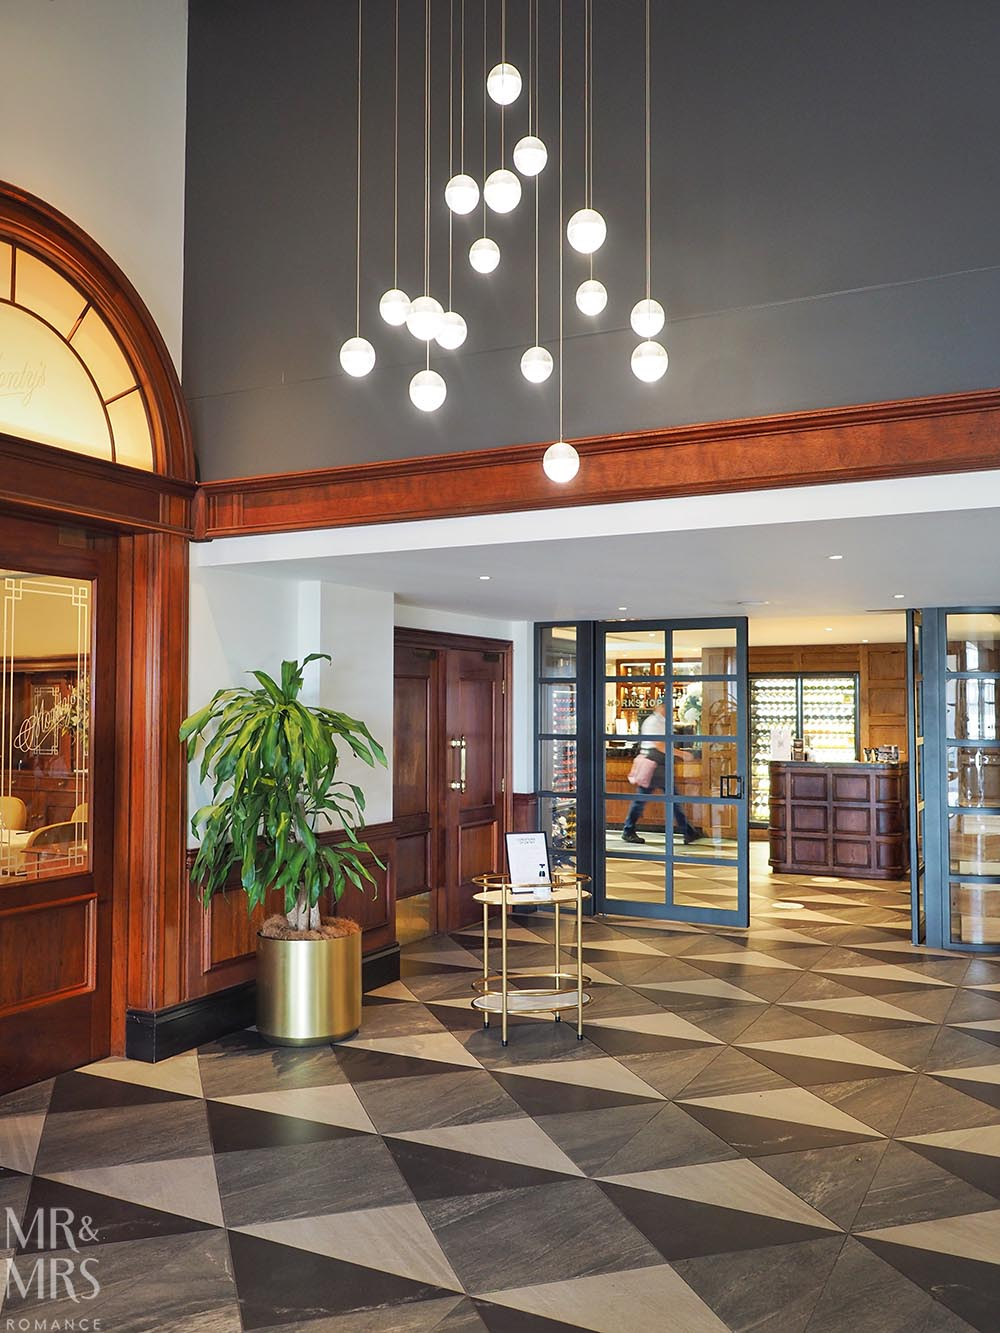 Where to stay in Tamworth NSW - Powerhouse Hotel Tamworth by Rydges - beautiful lobby